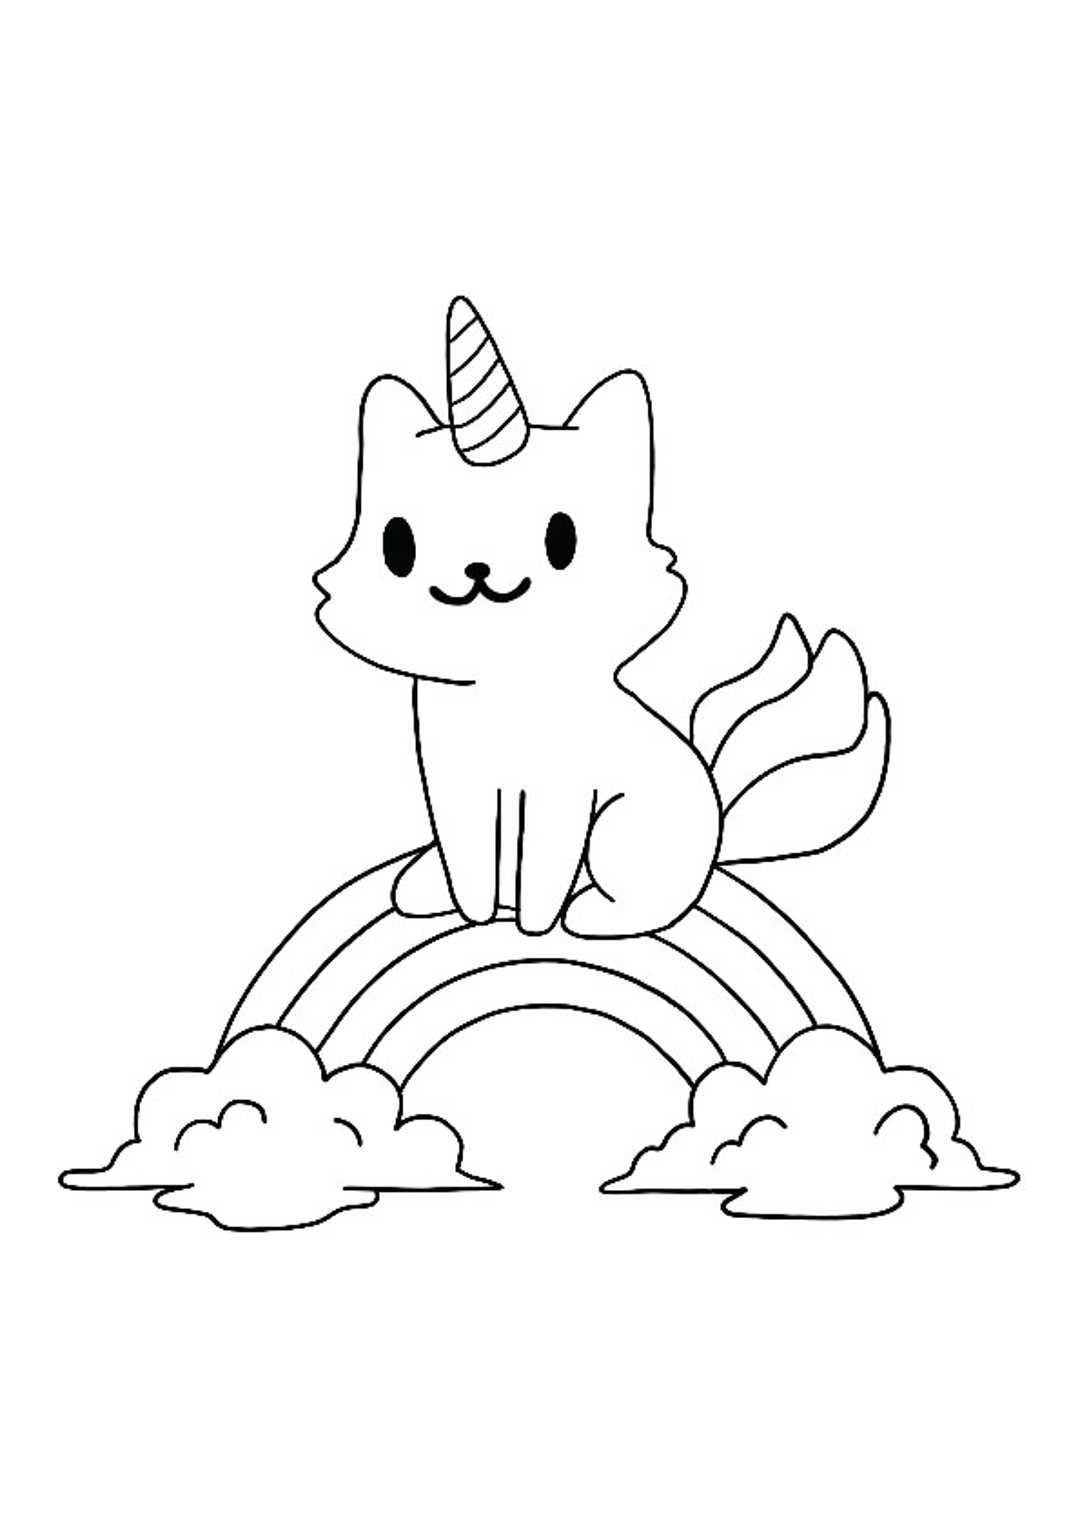 Unicorn Rainbow Coloring Pages Unicorn Coloring Pages Birthday Coloring Pages Free Printable Coloring Sheets